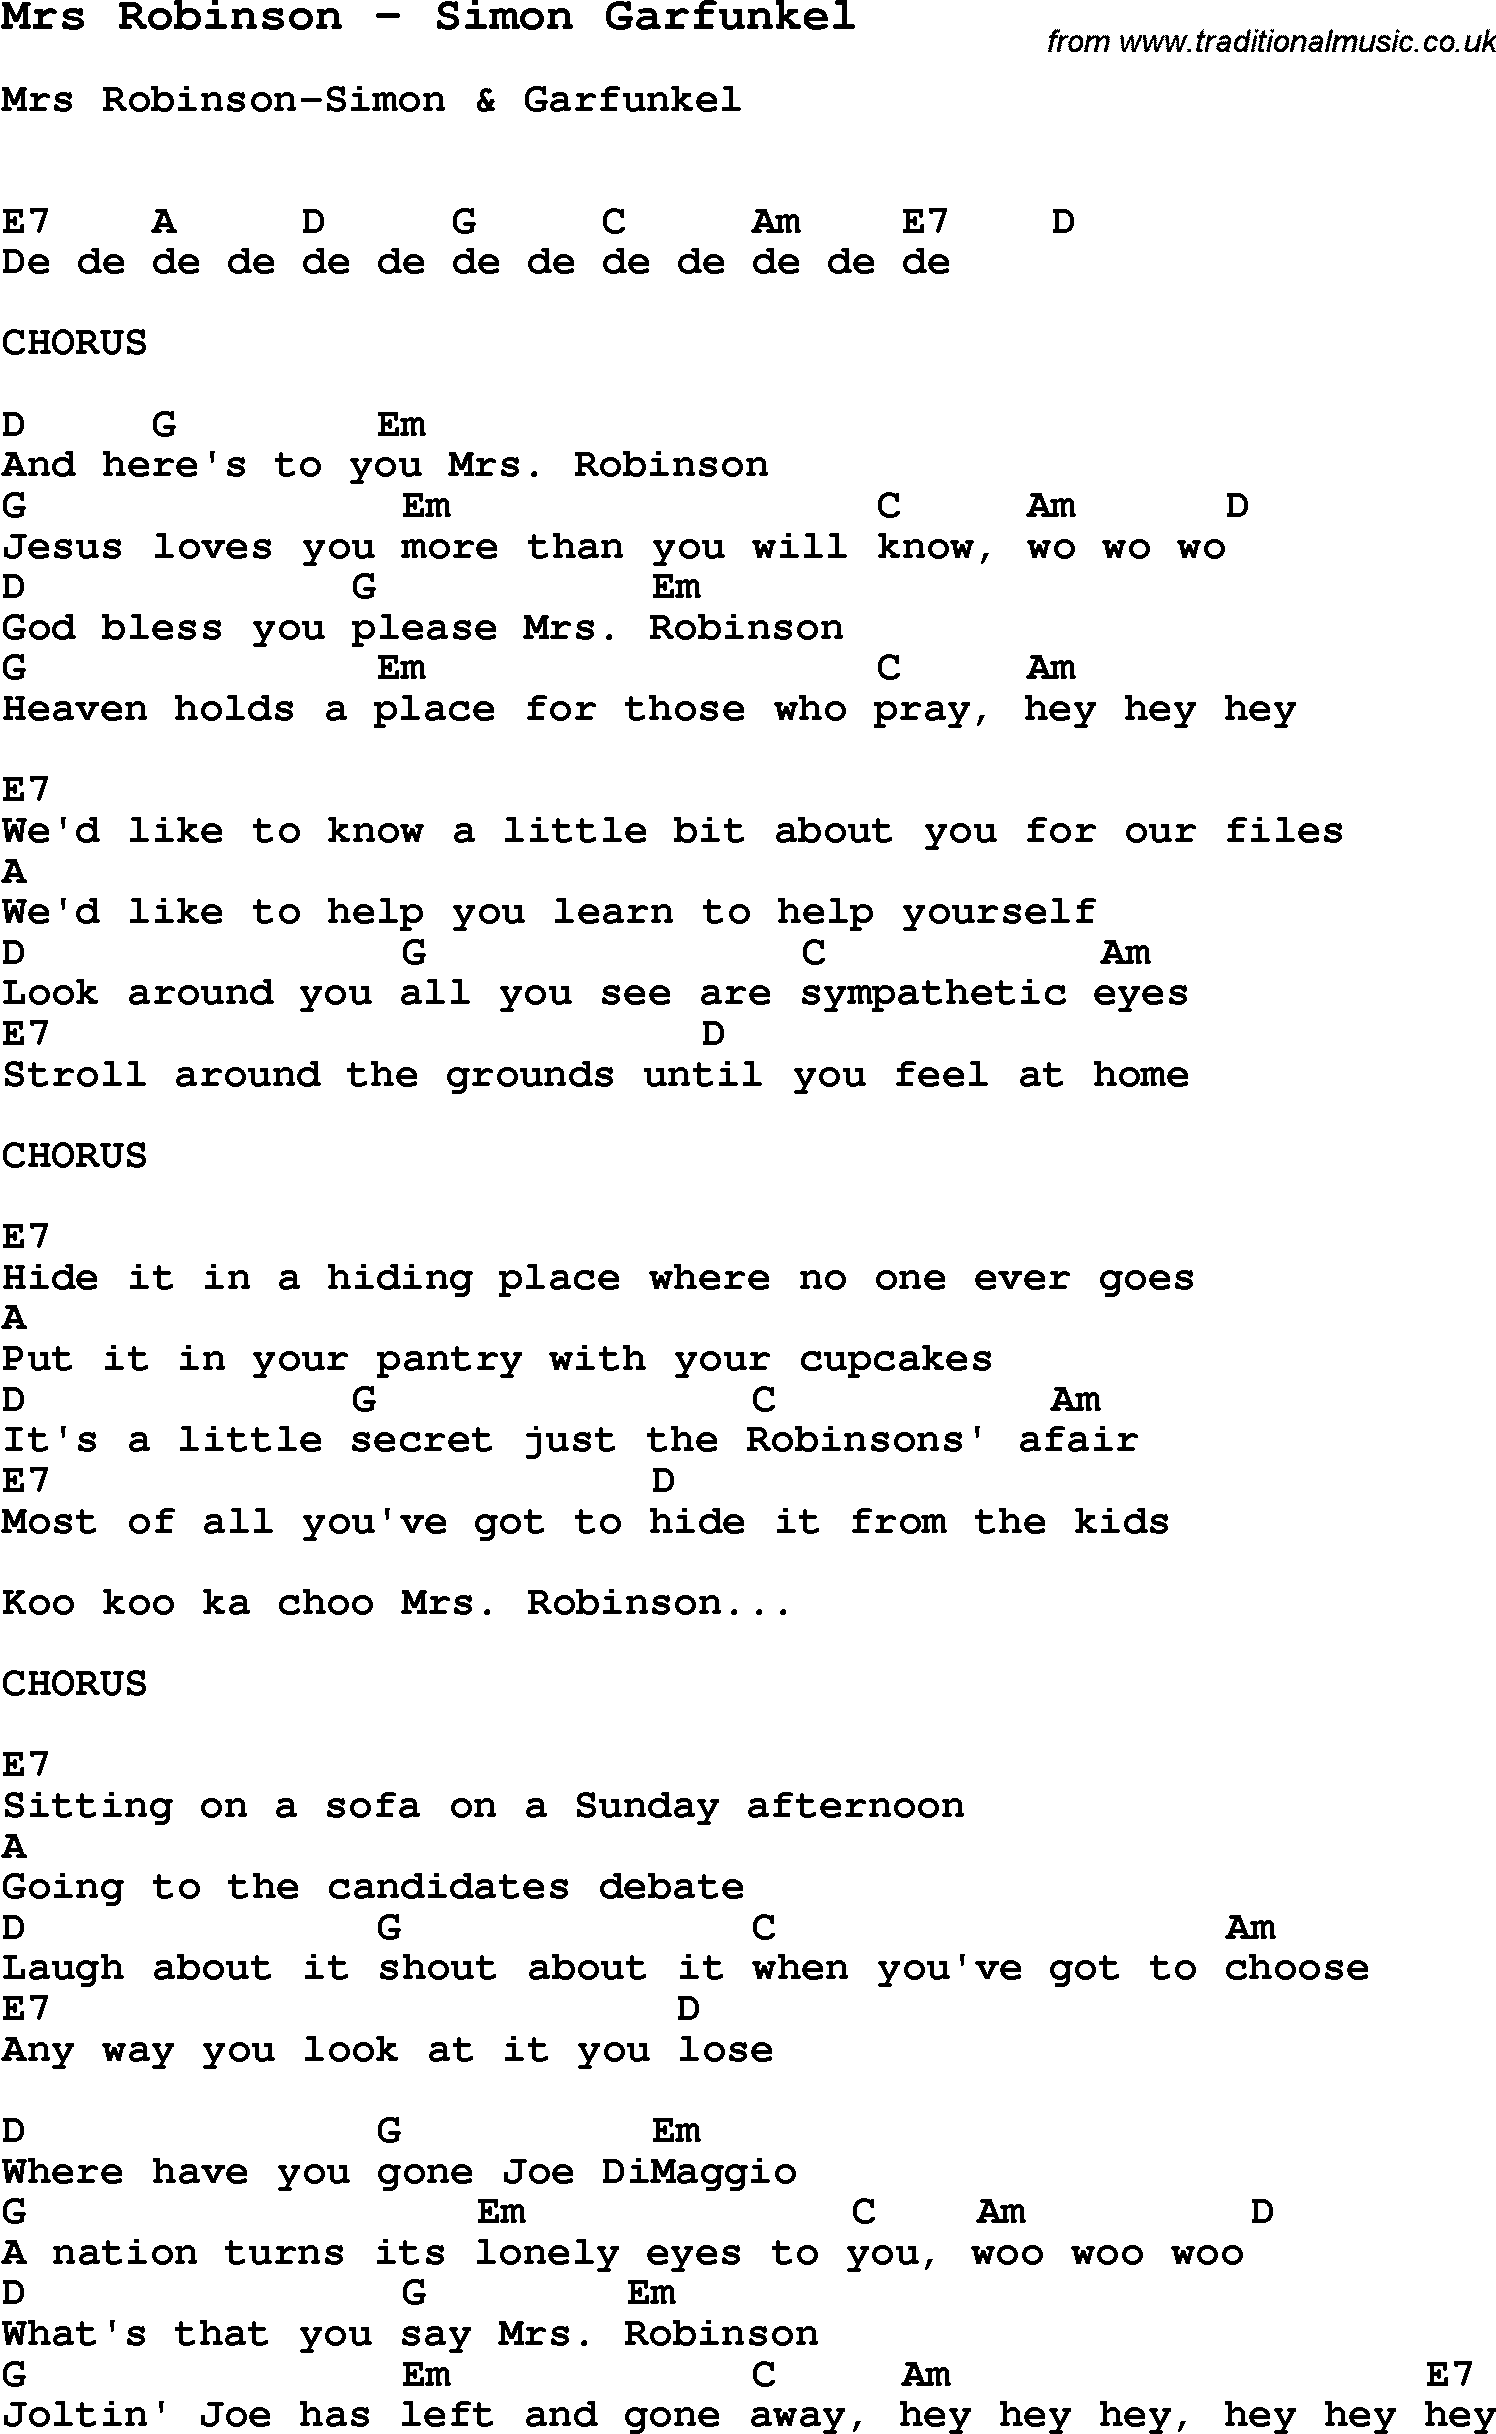 Song Mrs Robinson By Simon Garfunkel With Lyrics For Vocal Performance And Accompaniment Chords